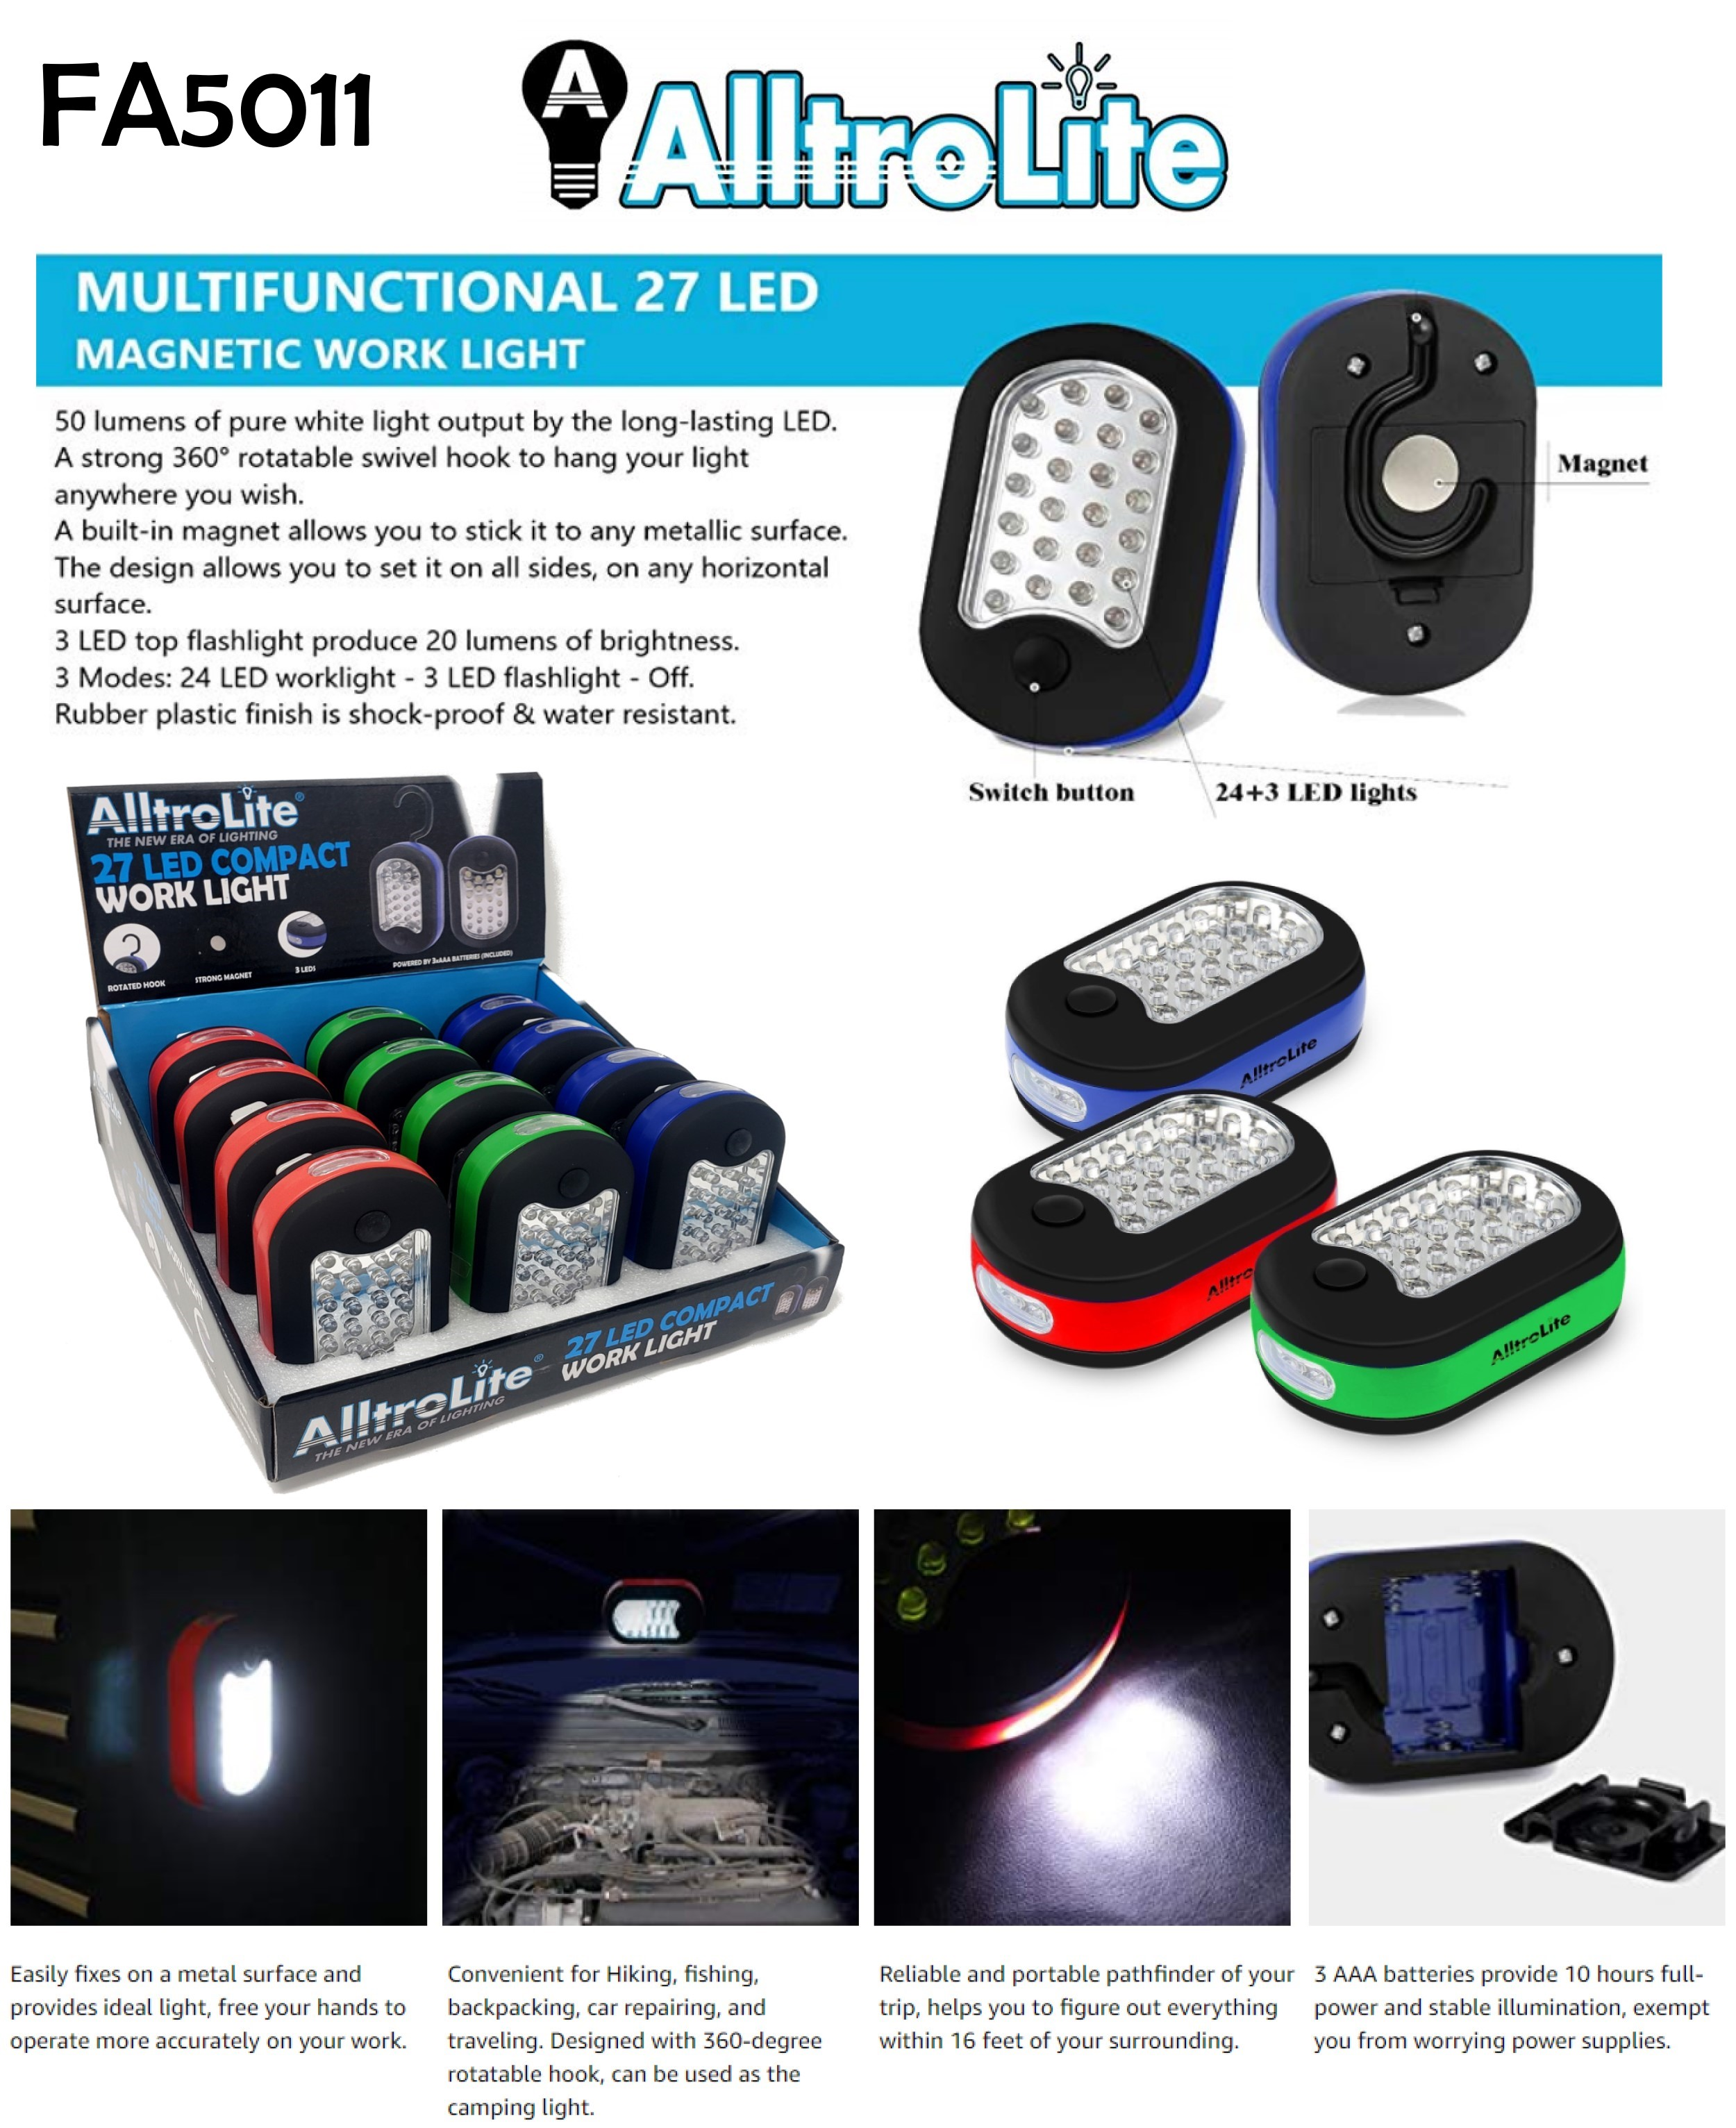 27 LED Magnetic Flashlight (FA5011)